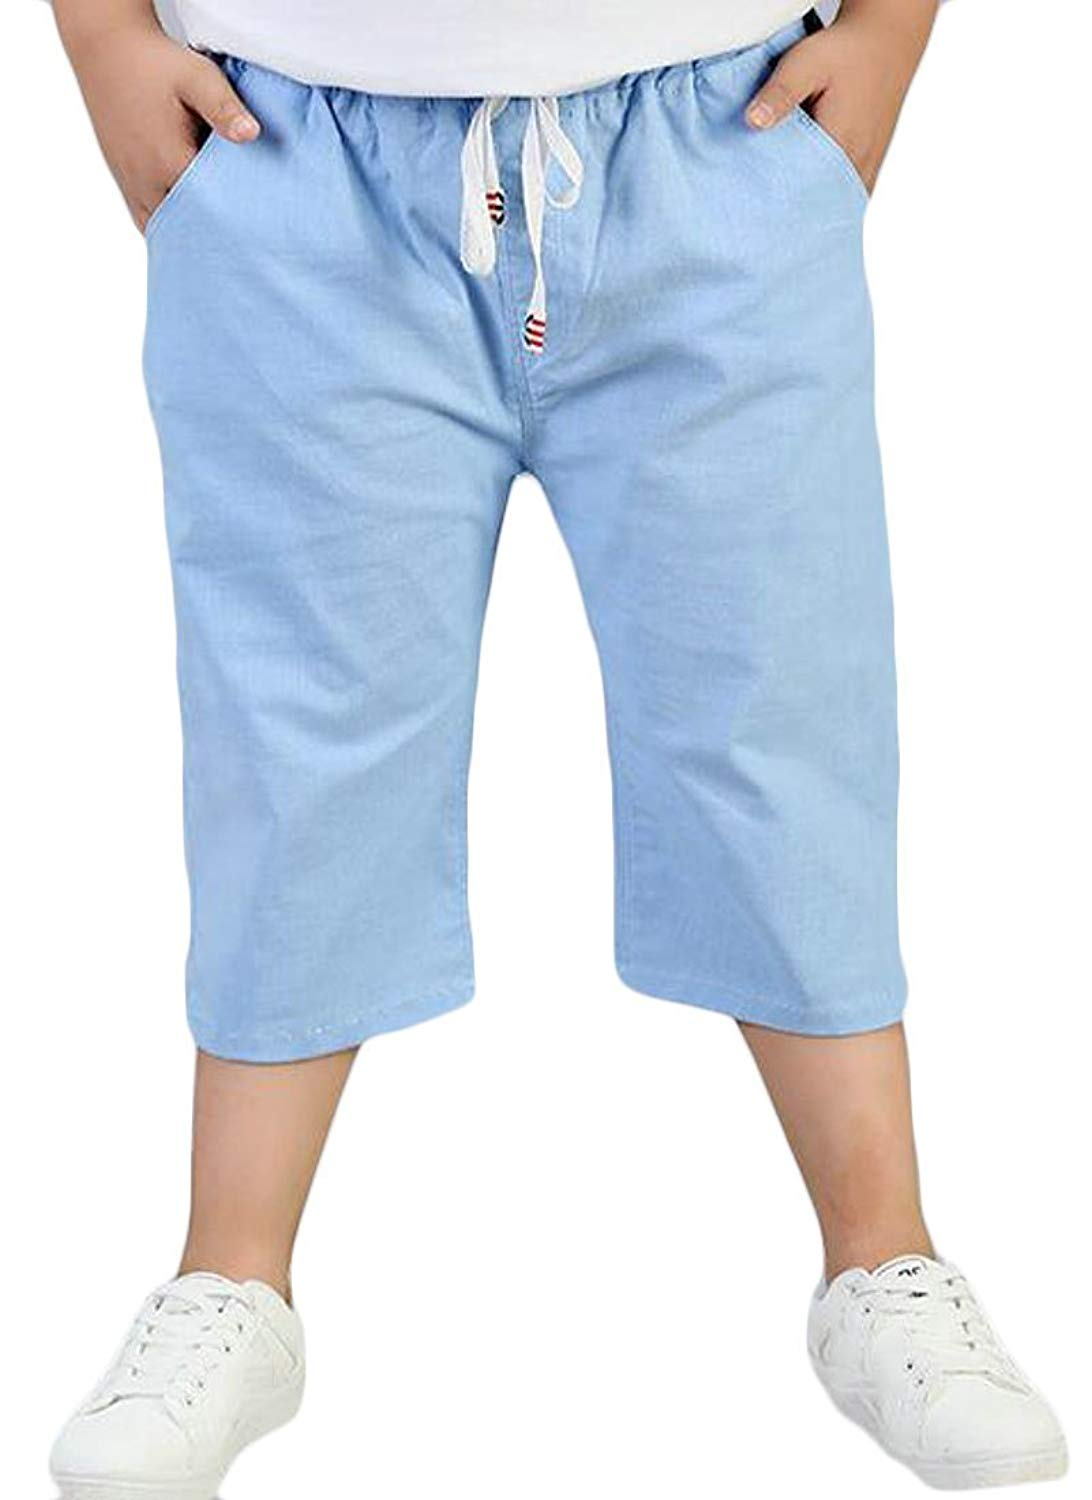 5dfa17a024fd Cheap Capri Drawstring Pants, find Capri Drawstring Pants deals on ...